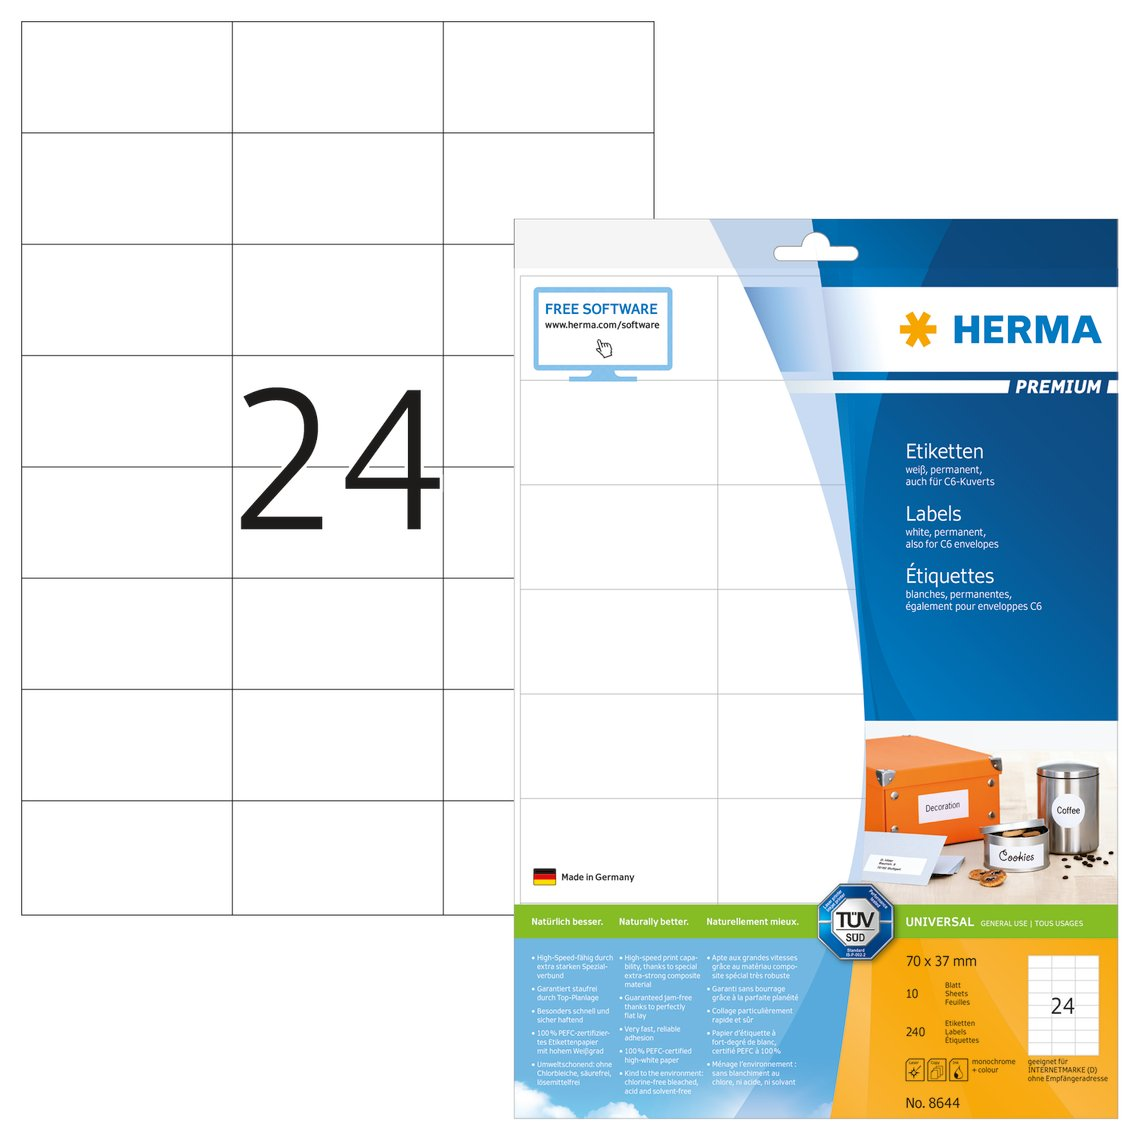 Herma 8644_ A4, 70 x 37 mm - Pack de 240 etiquetas, A4, 70 x 37 mm, color blanco: Amazon.es: Oficina y papelería